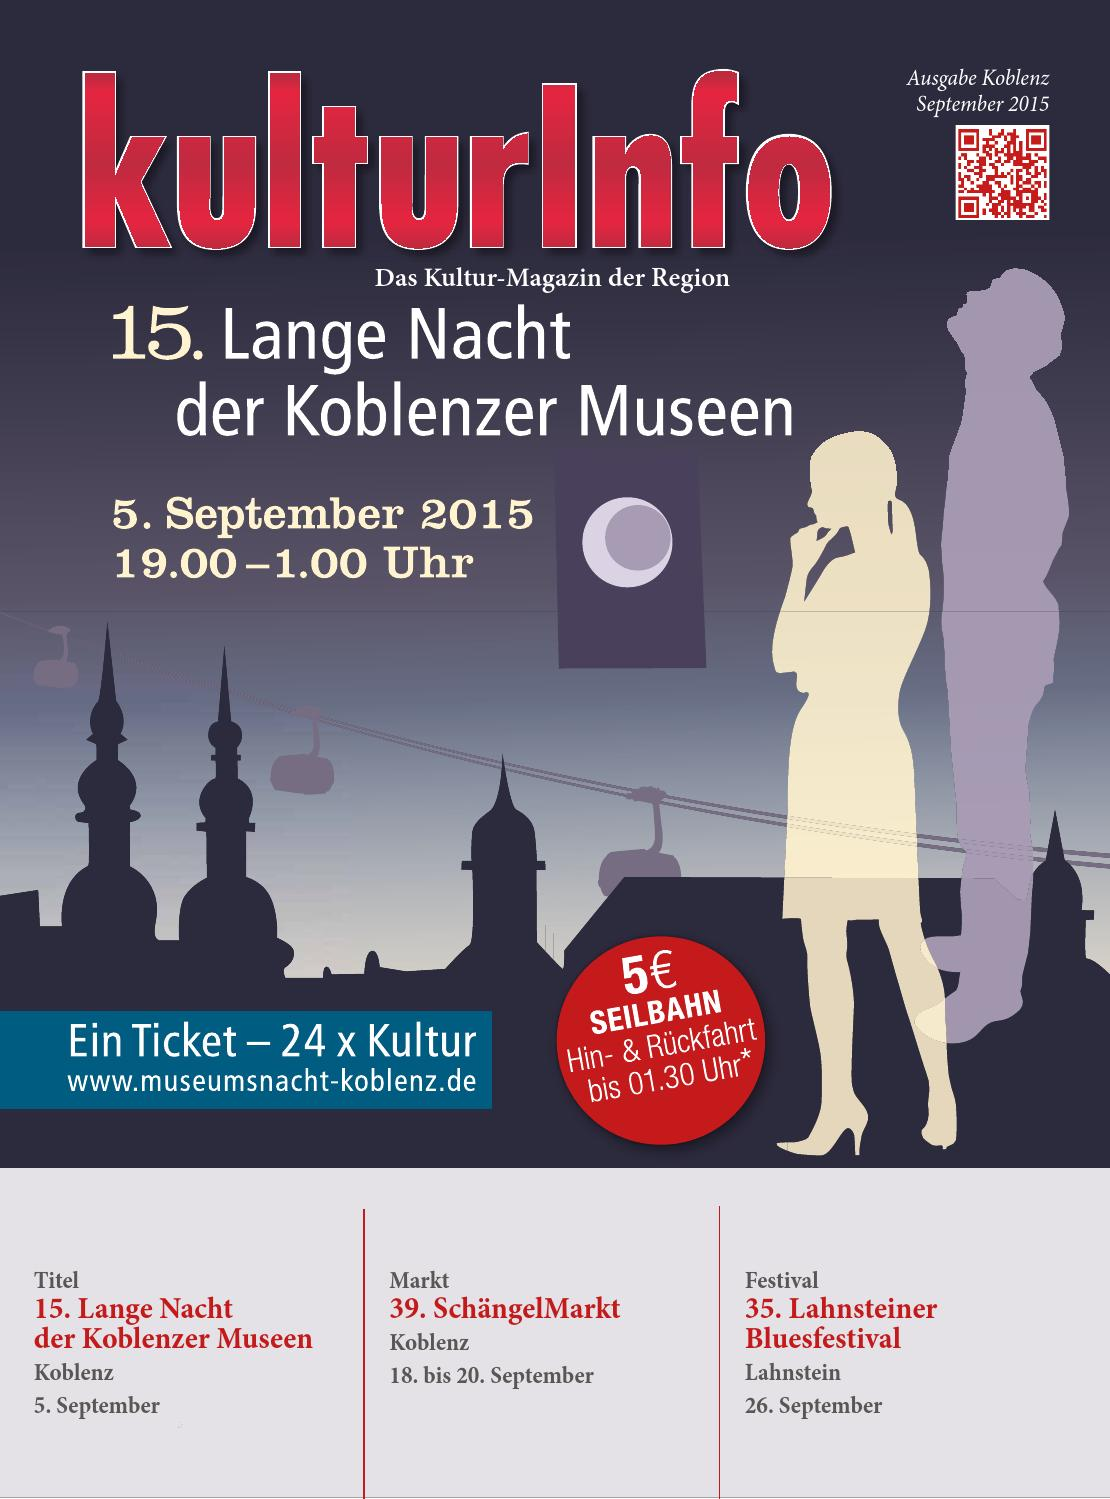 Kulturinfo Ausgabe September 2015 By Kulturverlag Koblenz Issuu